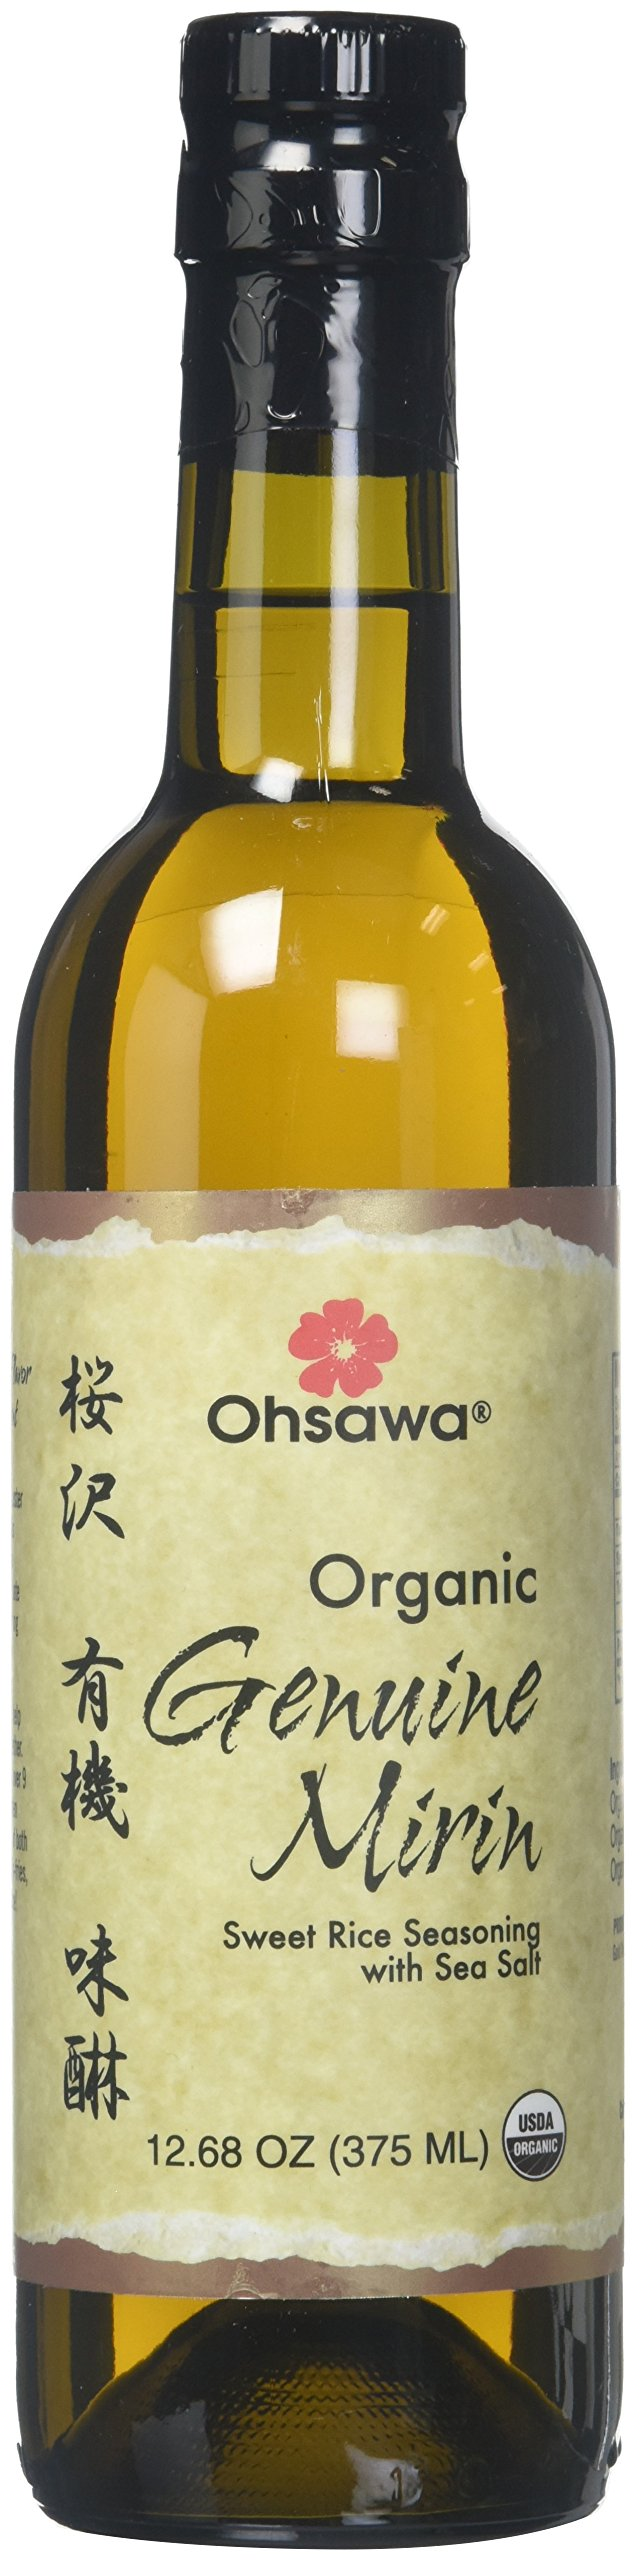 OHSAWA Genuine Mirin Sweet Rice Seasoning With Sea Salt Organic, 375 ML